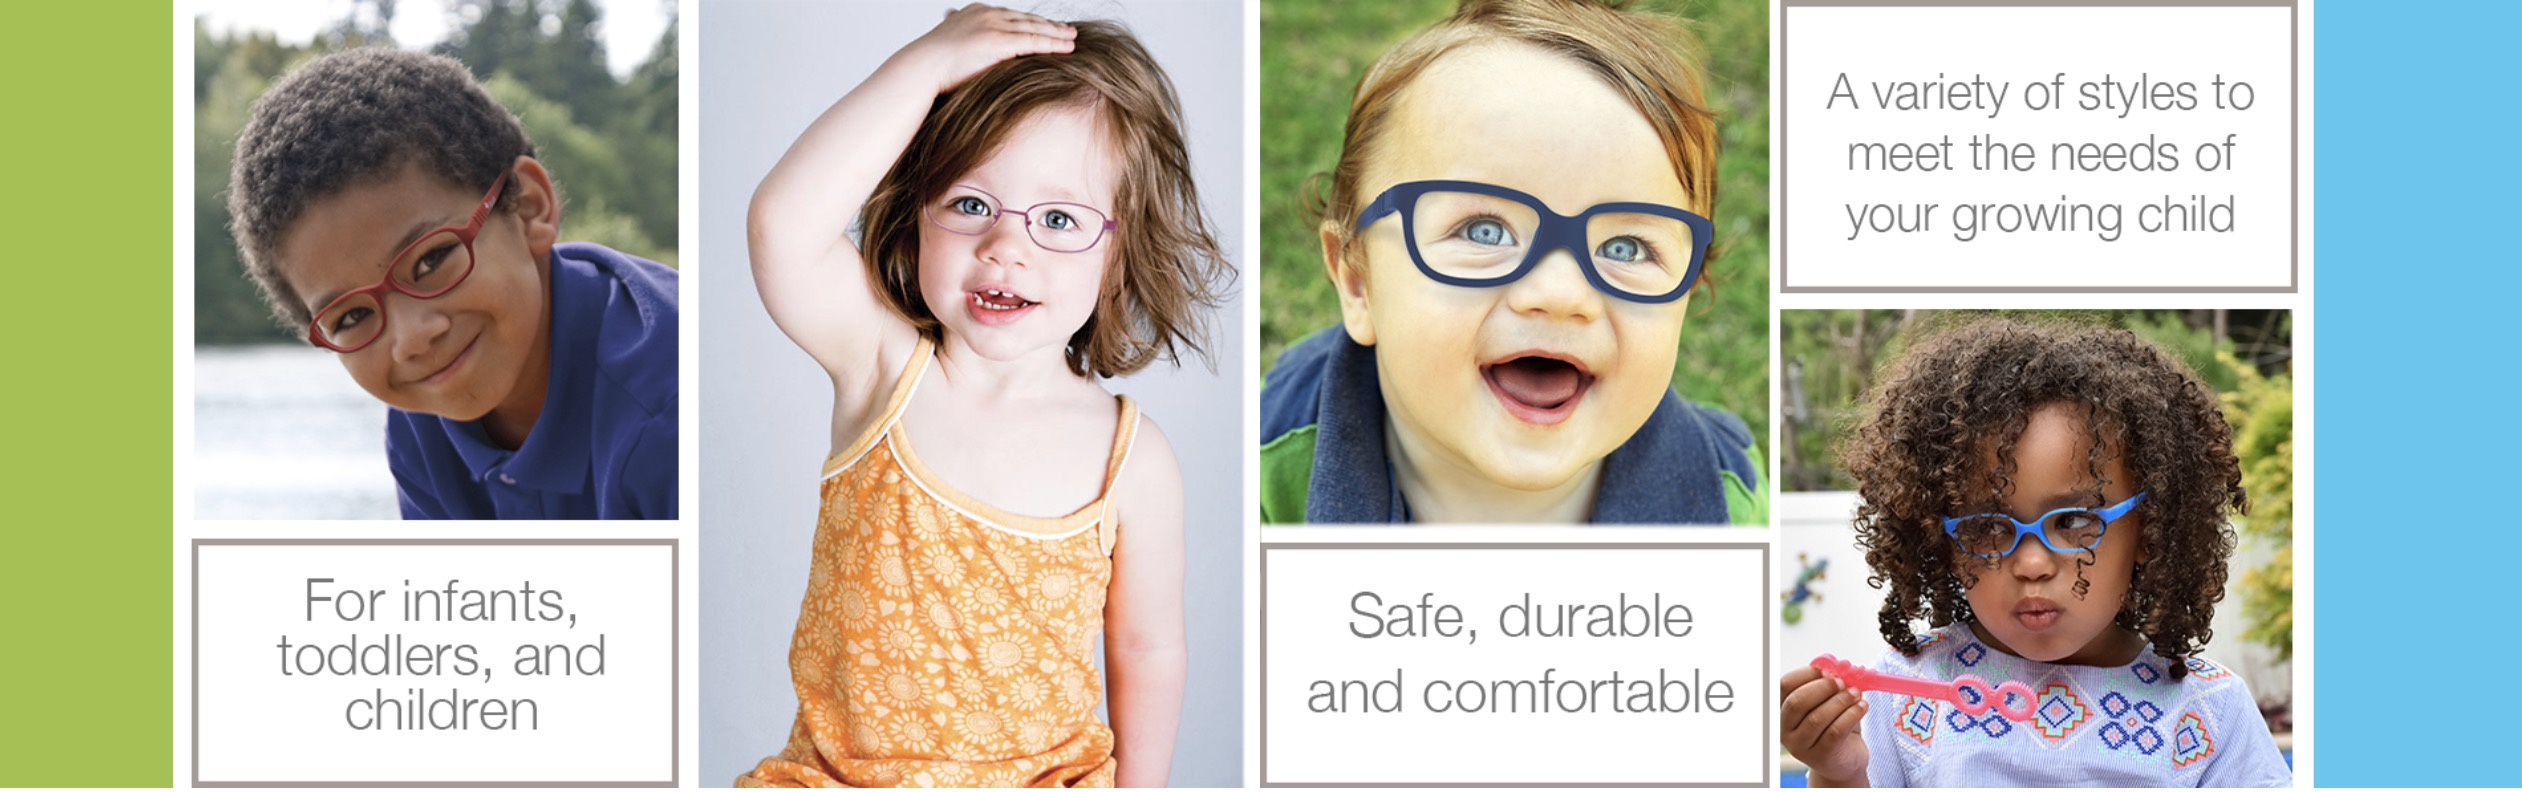 Dilli Dalli Pediatric Eyewear